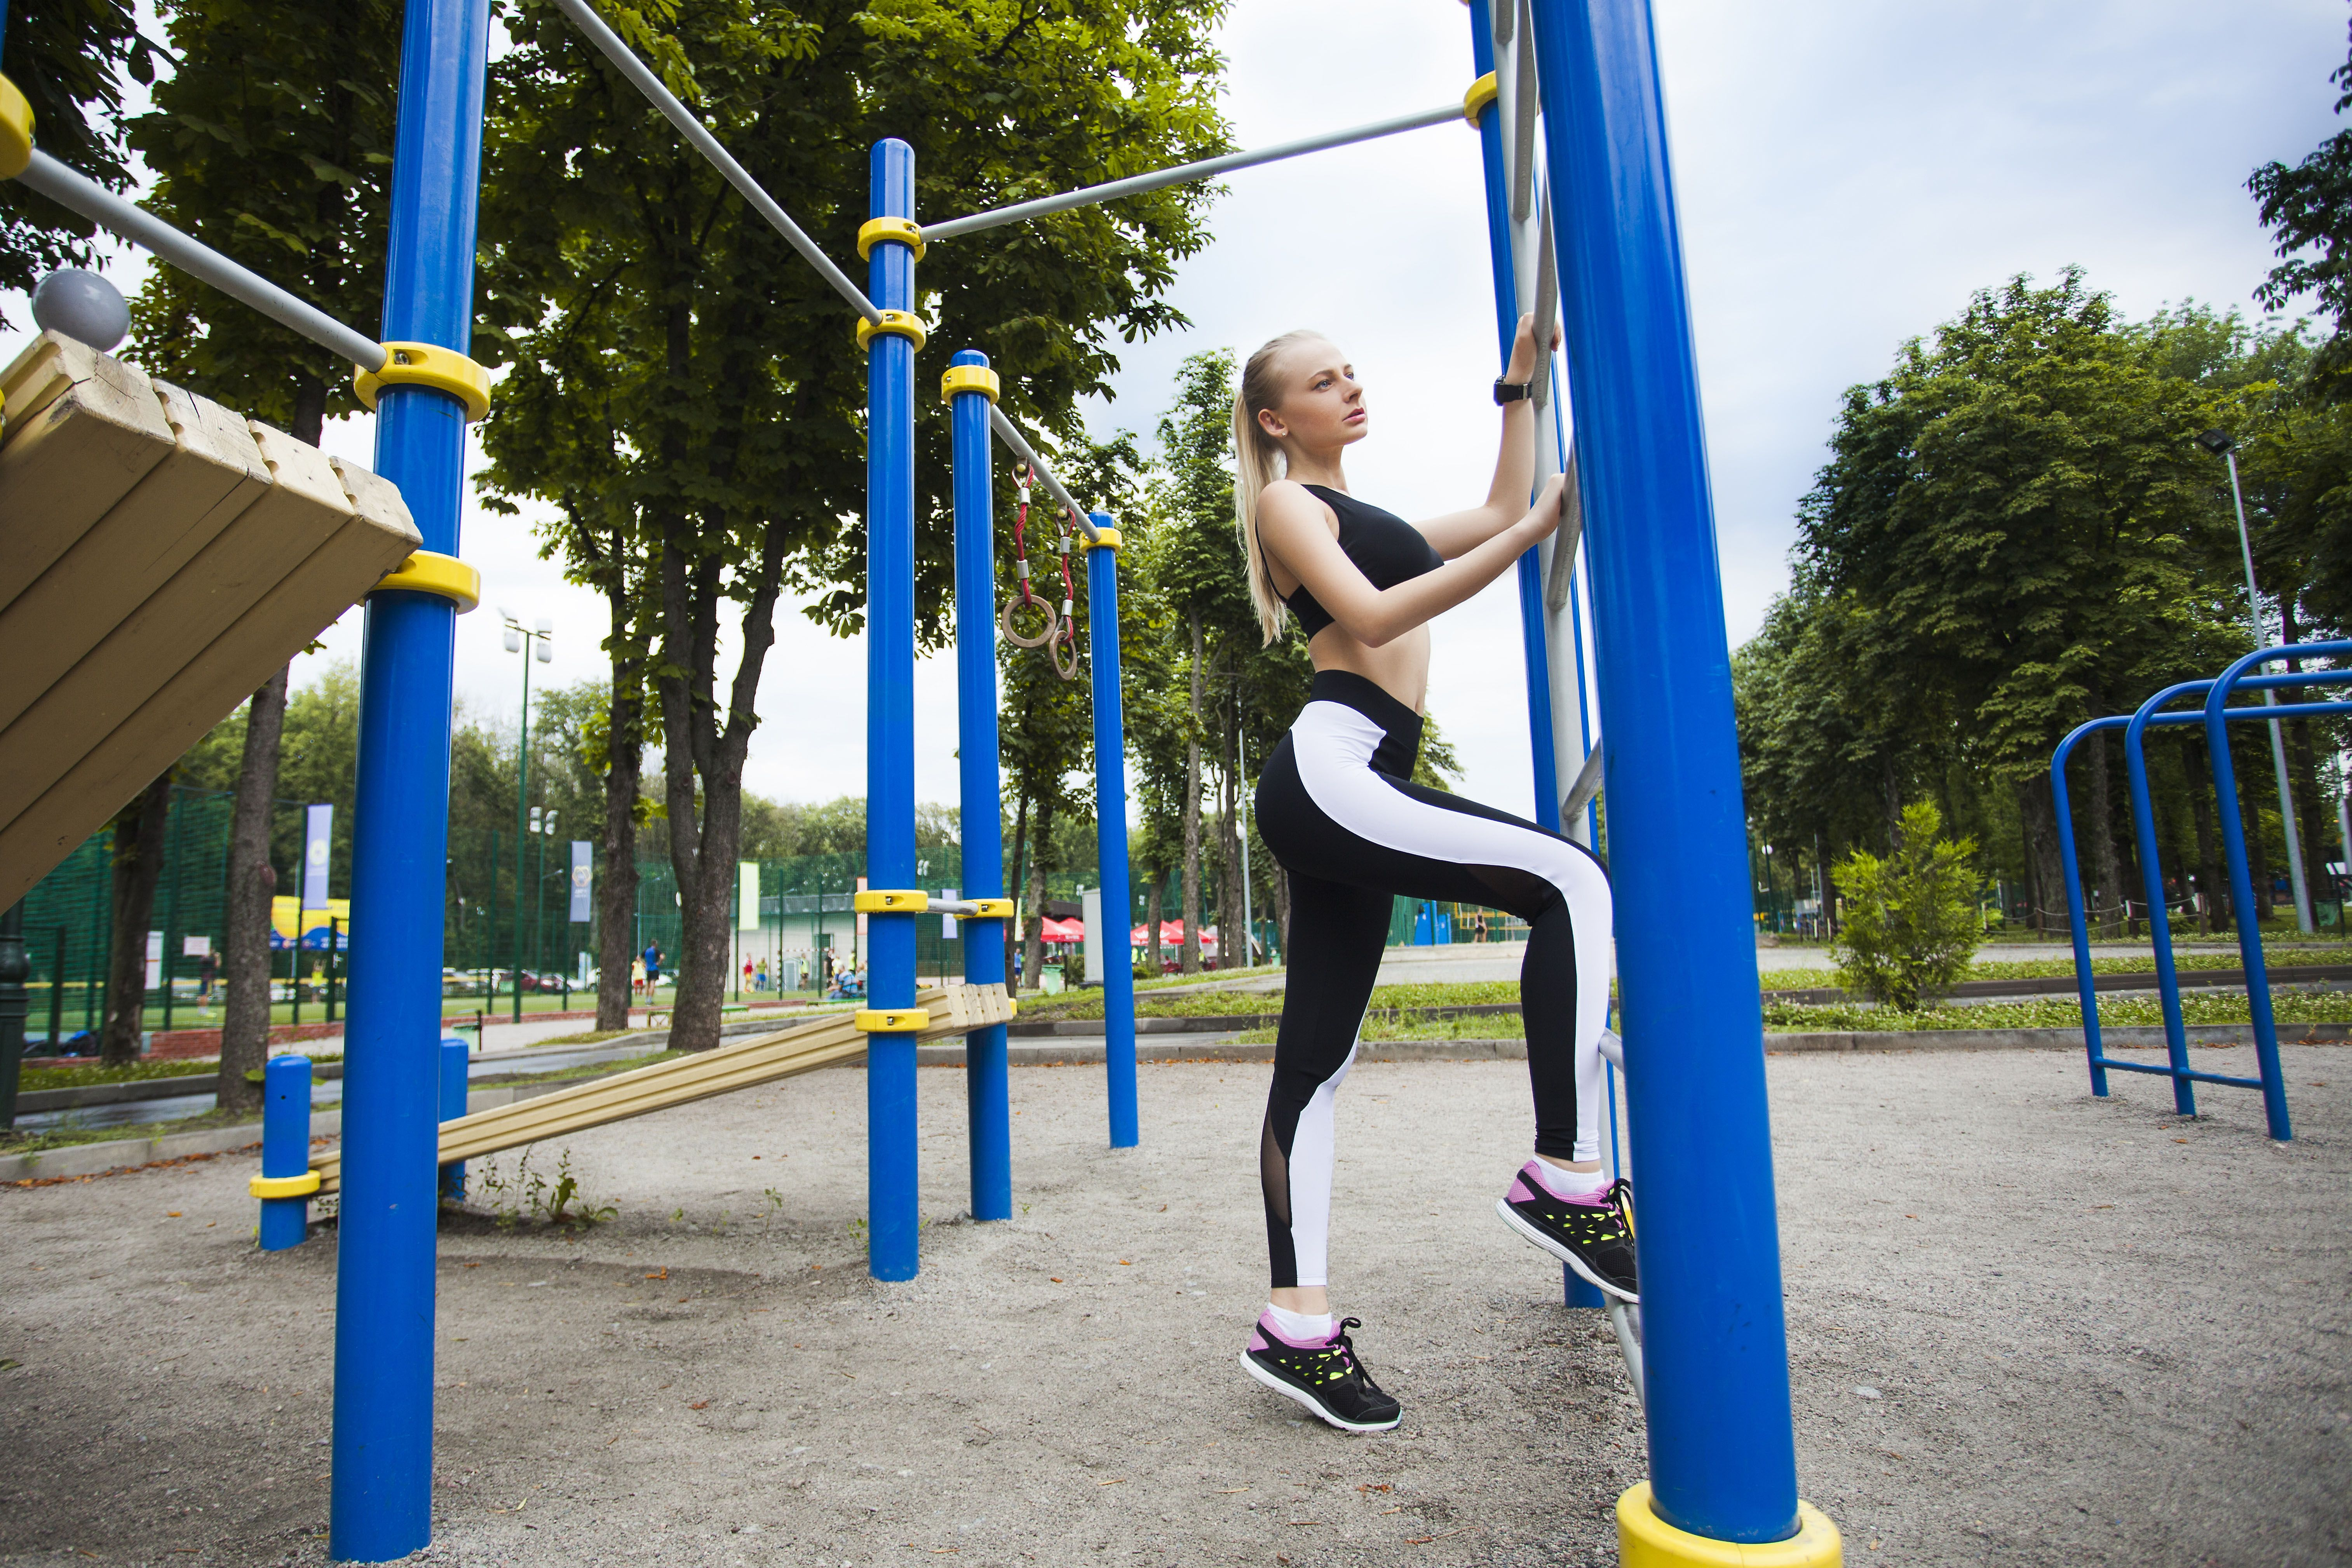 15 Parental Exercise Hacks to Turn a Playground into a Gym